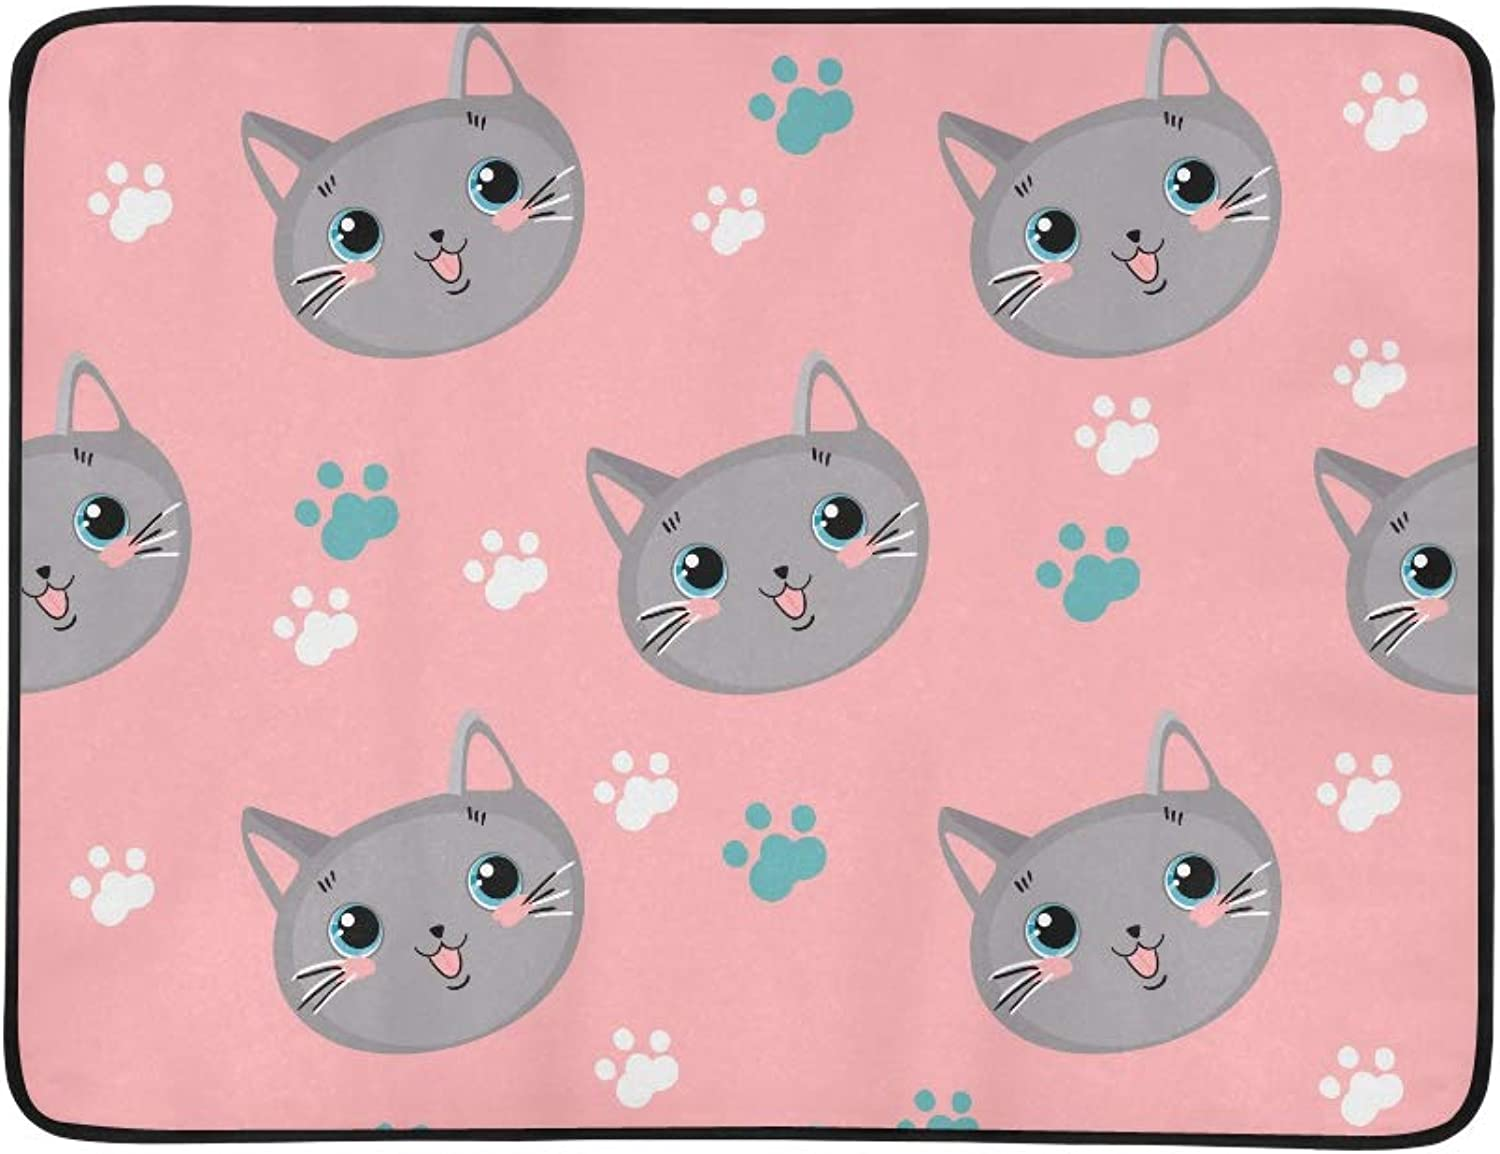 Cute Cats Paws Footprints Pink Pattern Pattern Portable and Foldable Blanket Mat 60x78 Inch Handy Mat for Camping Picnic Beach Indoor Outdoor Travel